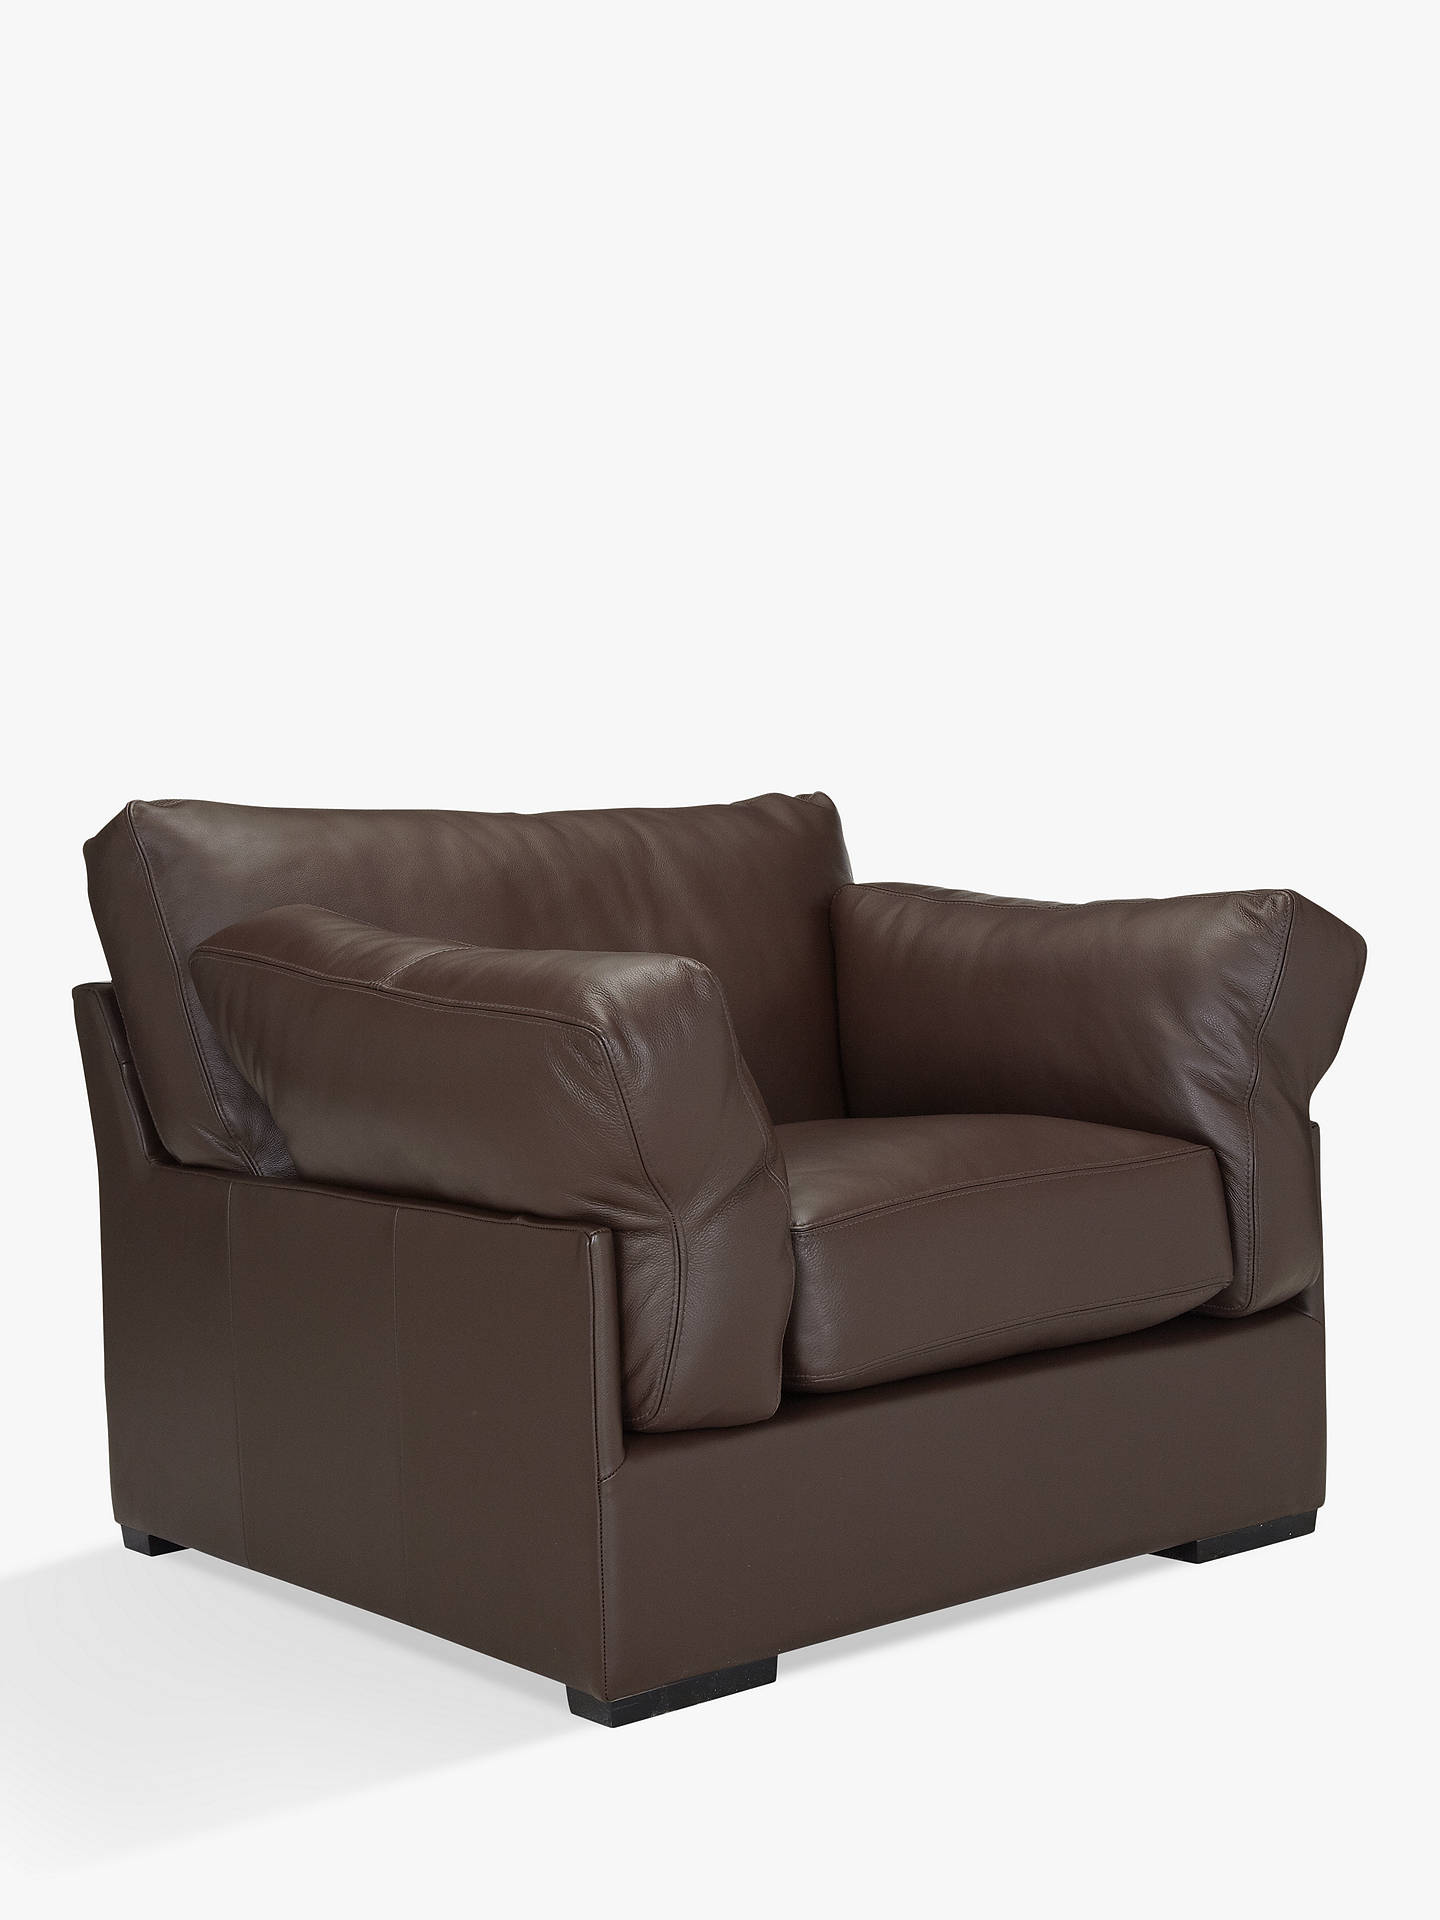 John Lewis Partners Java Semi Aniline Leather Armchair Nature Brown Online At Johnlewis